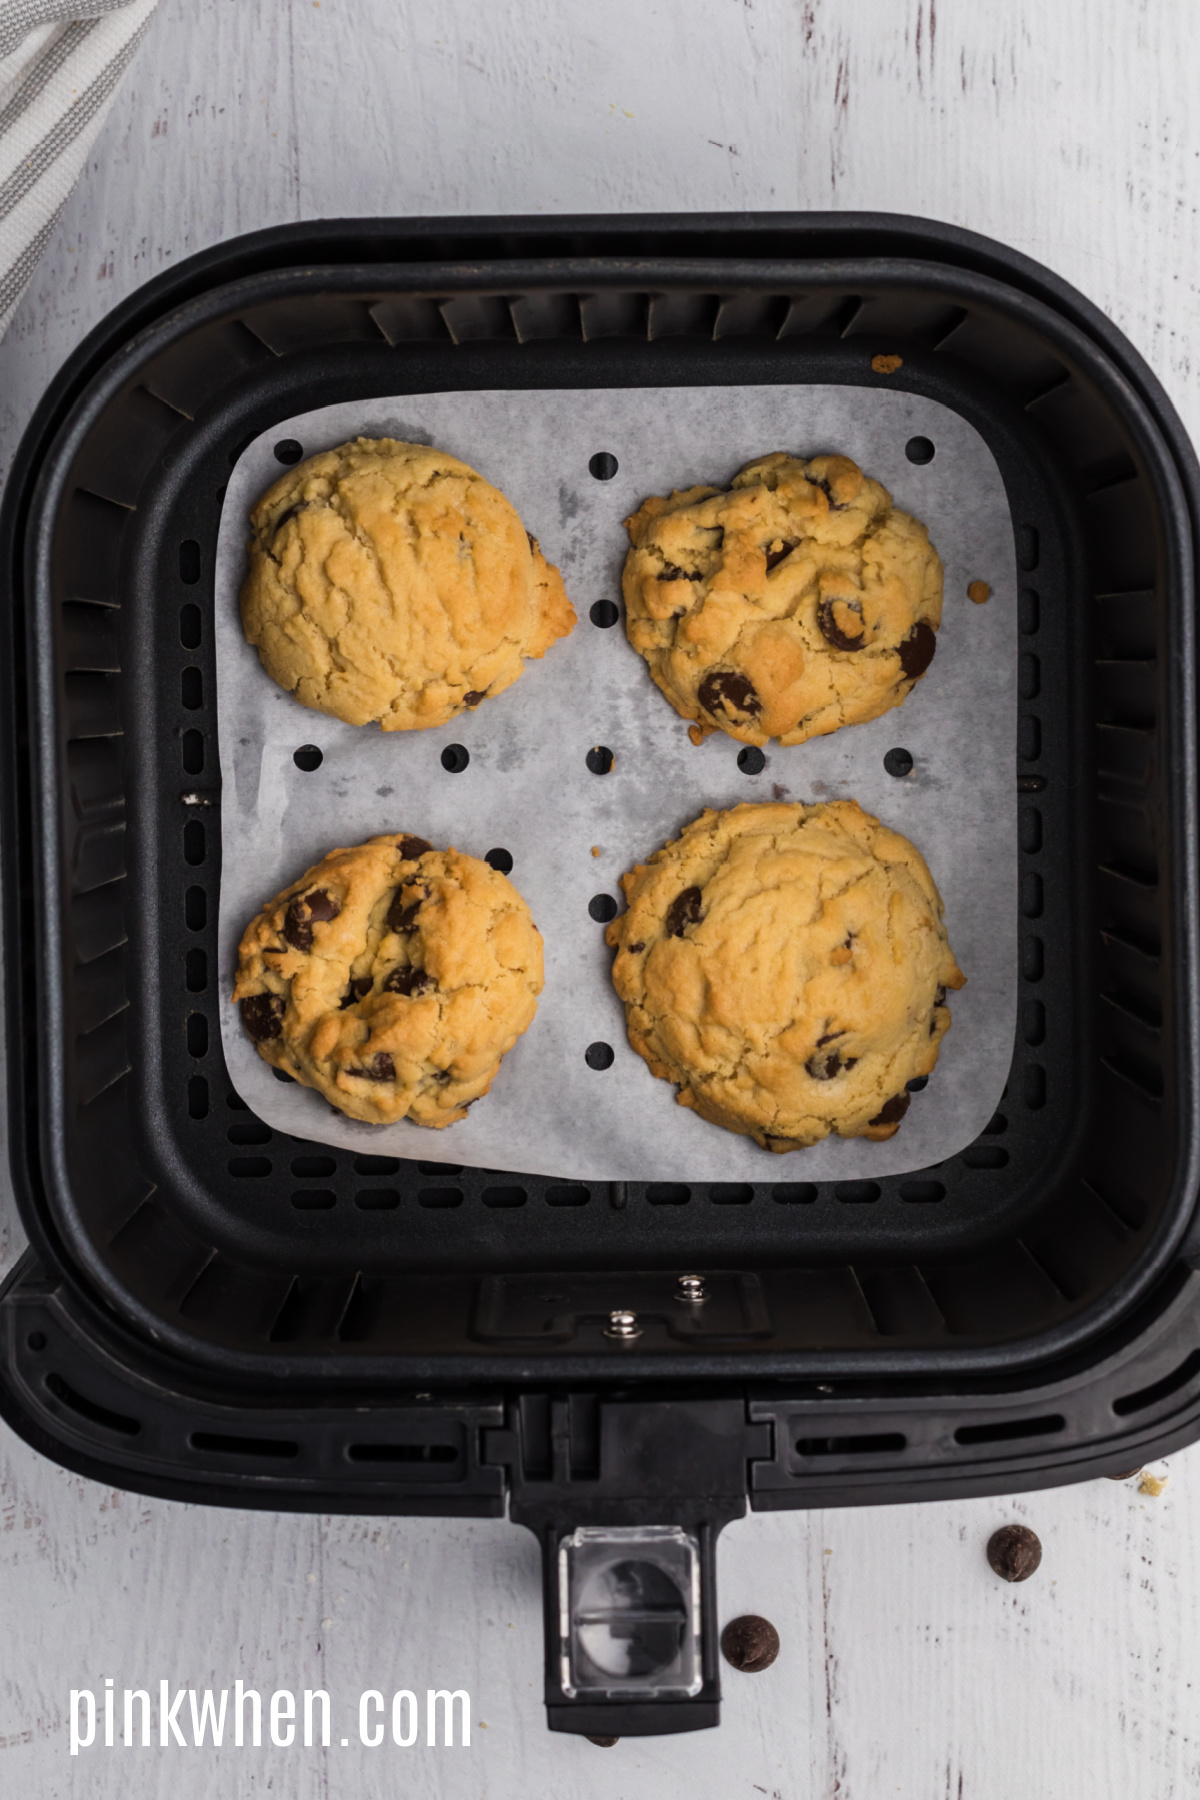 Larger sized Chocolate chip cookies in the basket of the air fryer.